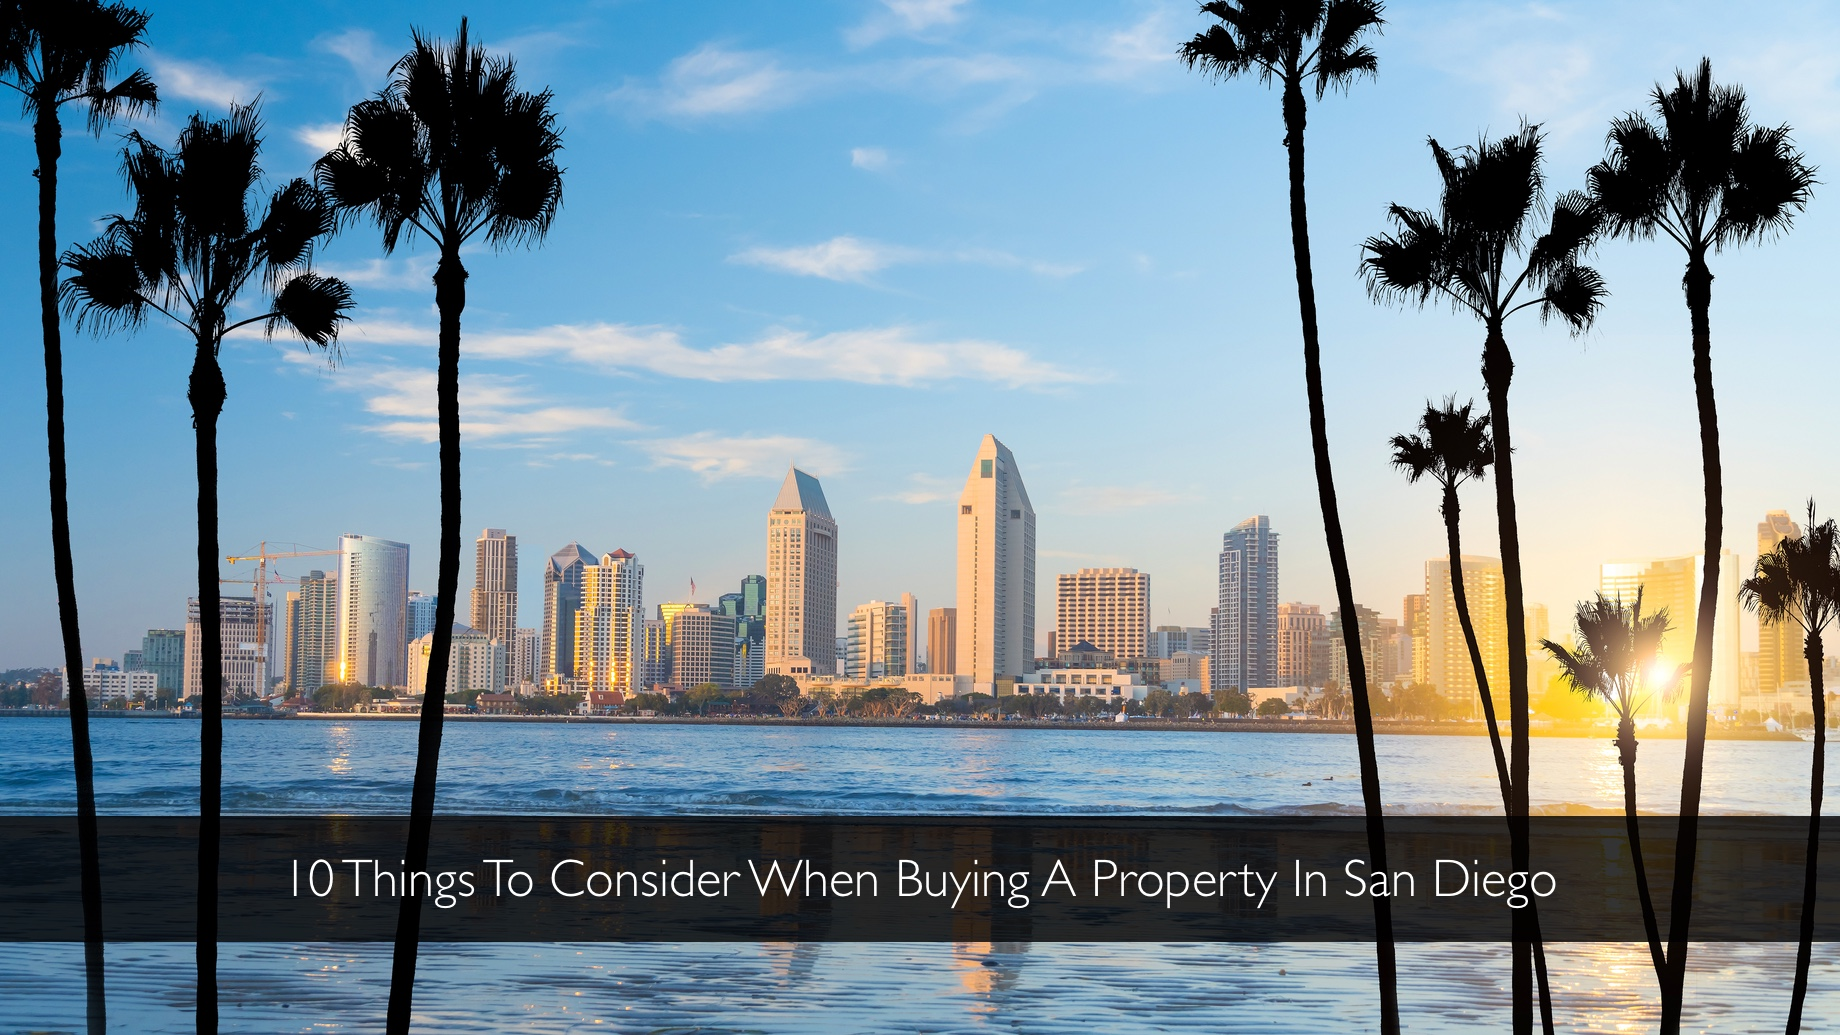 10 Things To Consider When Buying A Property In San Diego